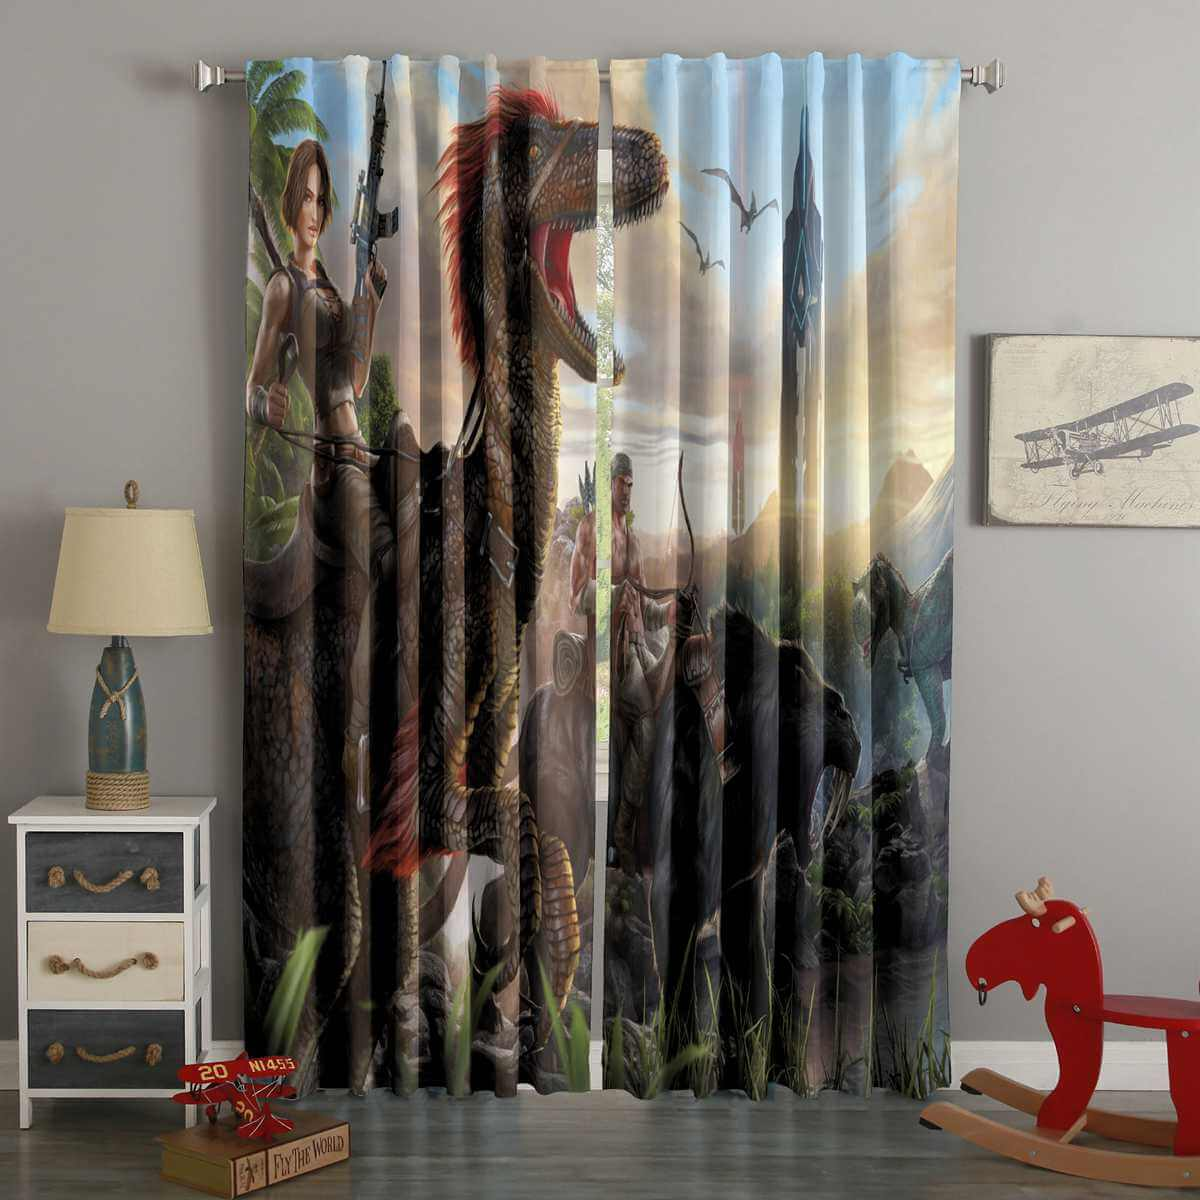 3d Printed Ark Survival Evolved Style Custom Living Room Curtains Westbedding